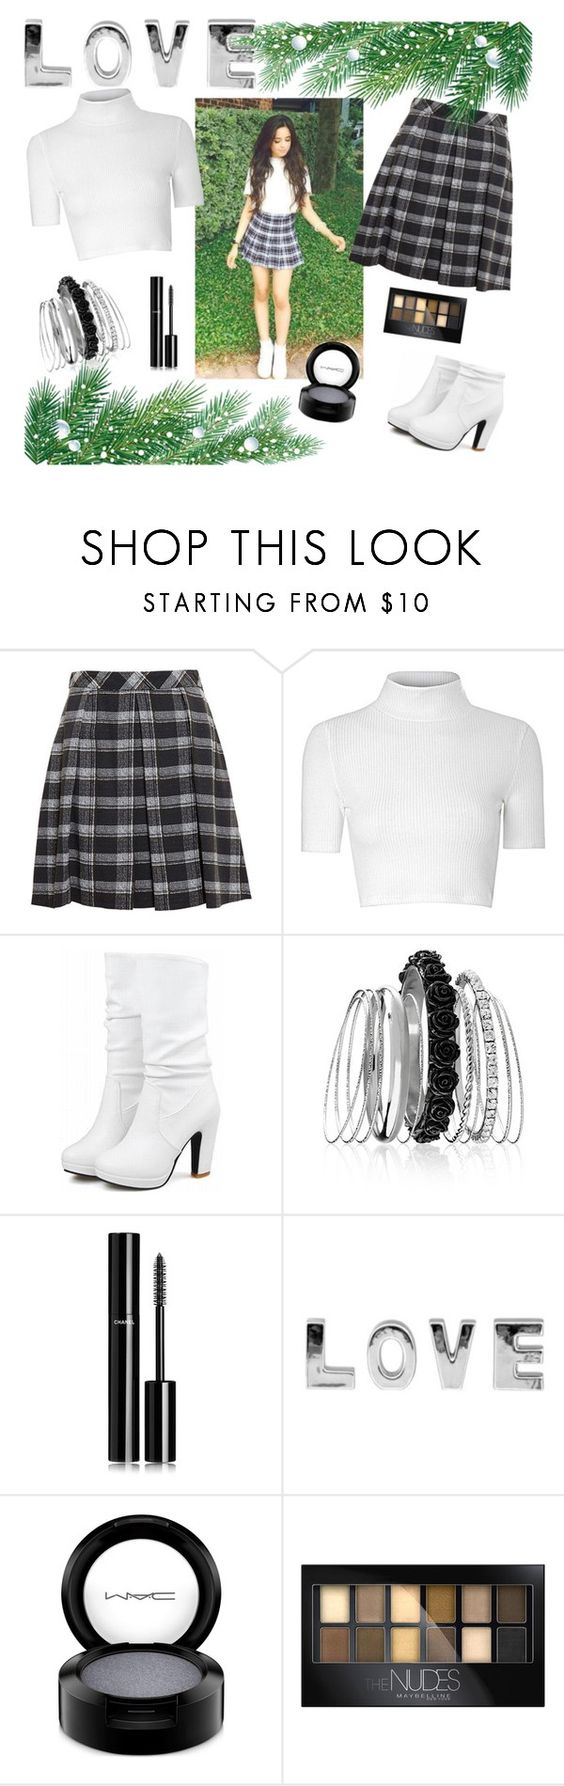 """""""Camila Cabello"""" by sandragisela99 ❤ liked on Polyvore featuring Proenza Schouler, Glamorous, Avenue, Chanel, MAC Cosmetics and Maybelline"""